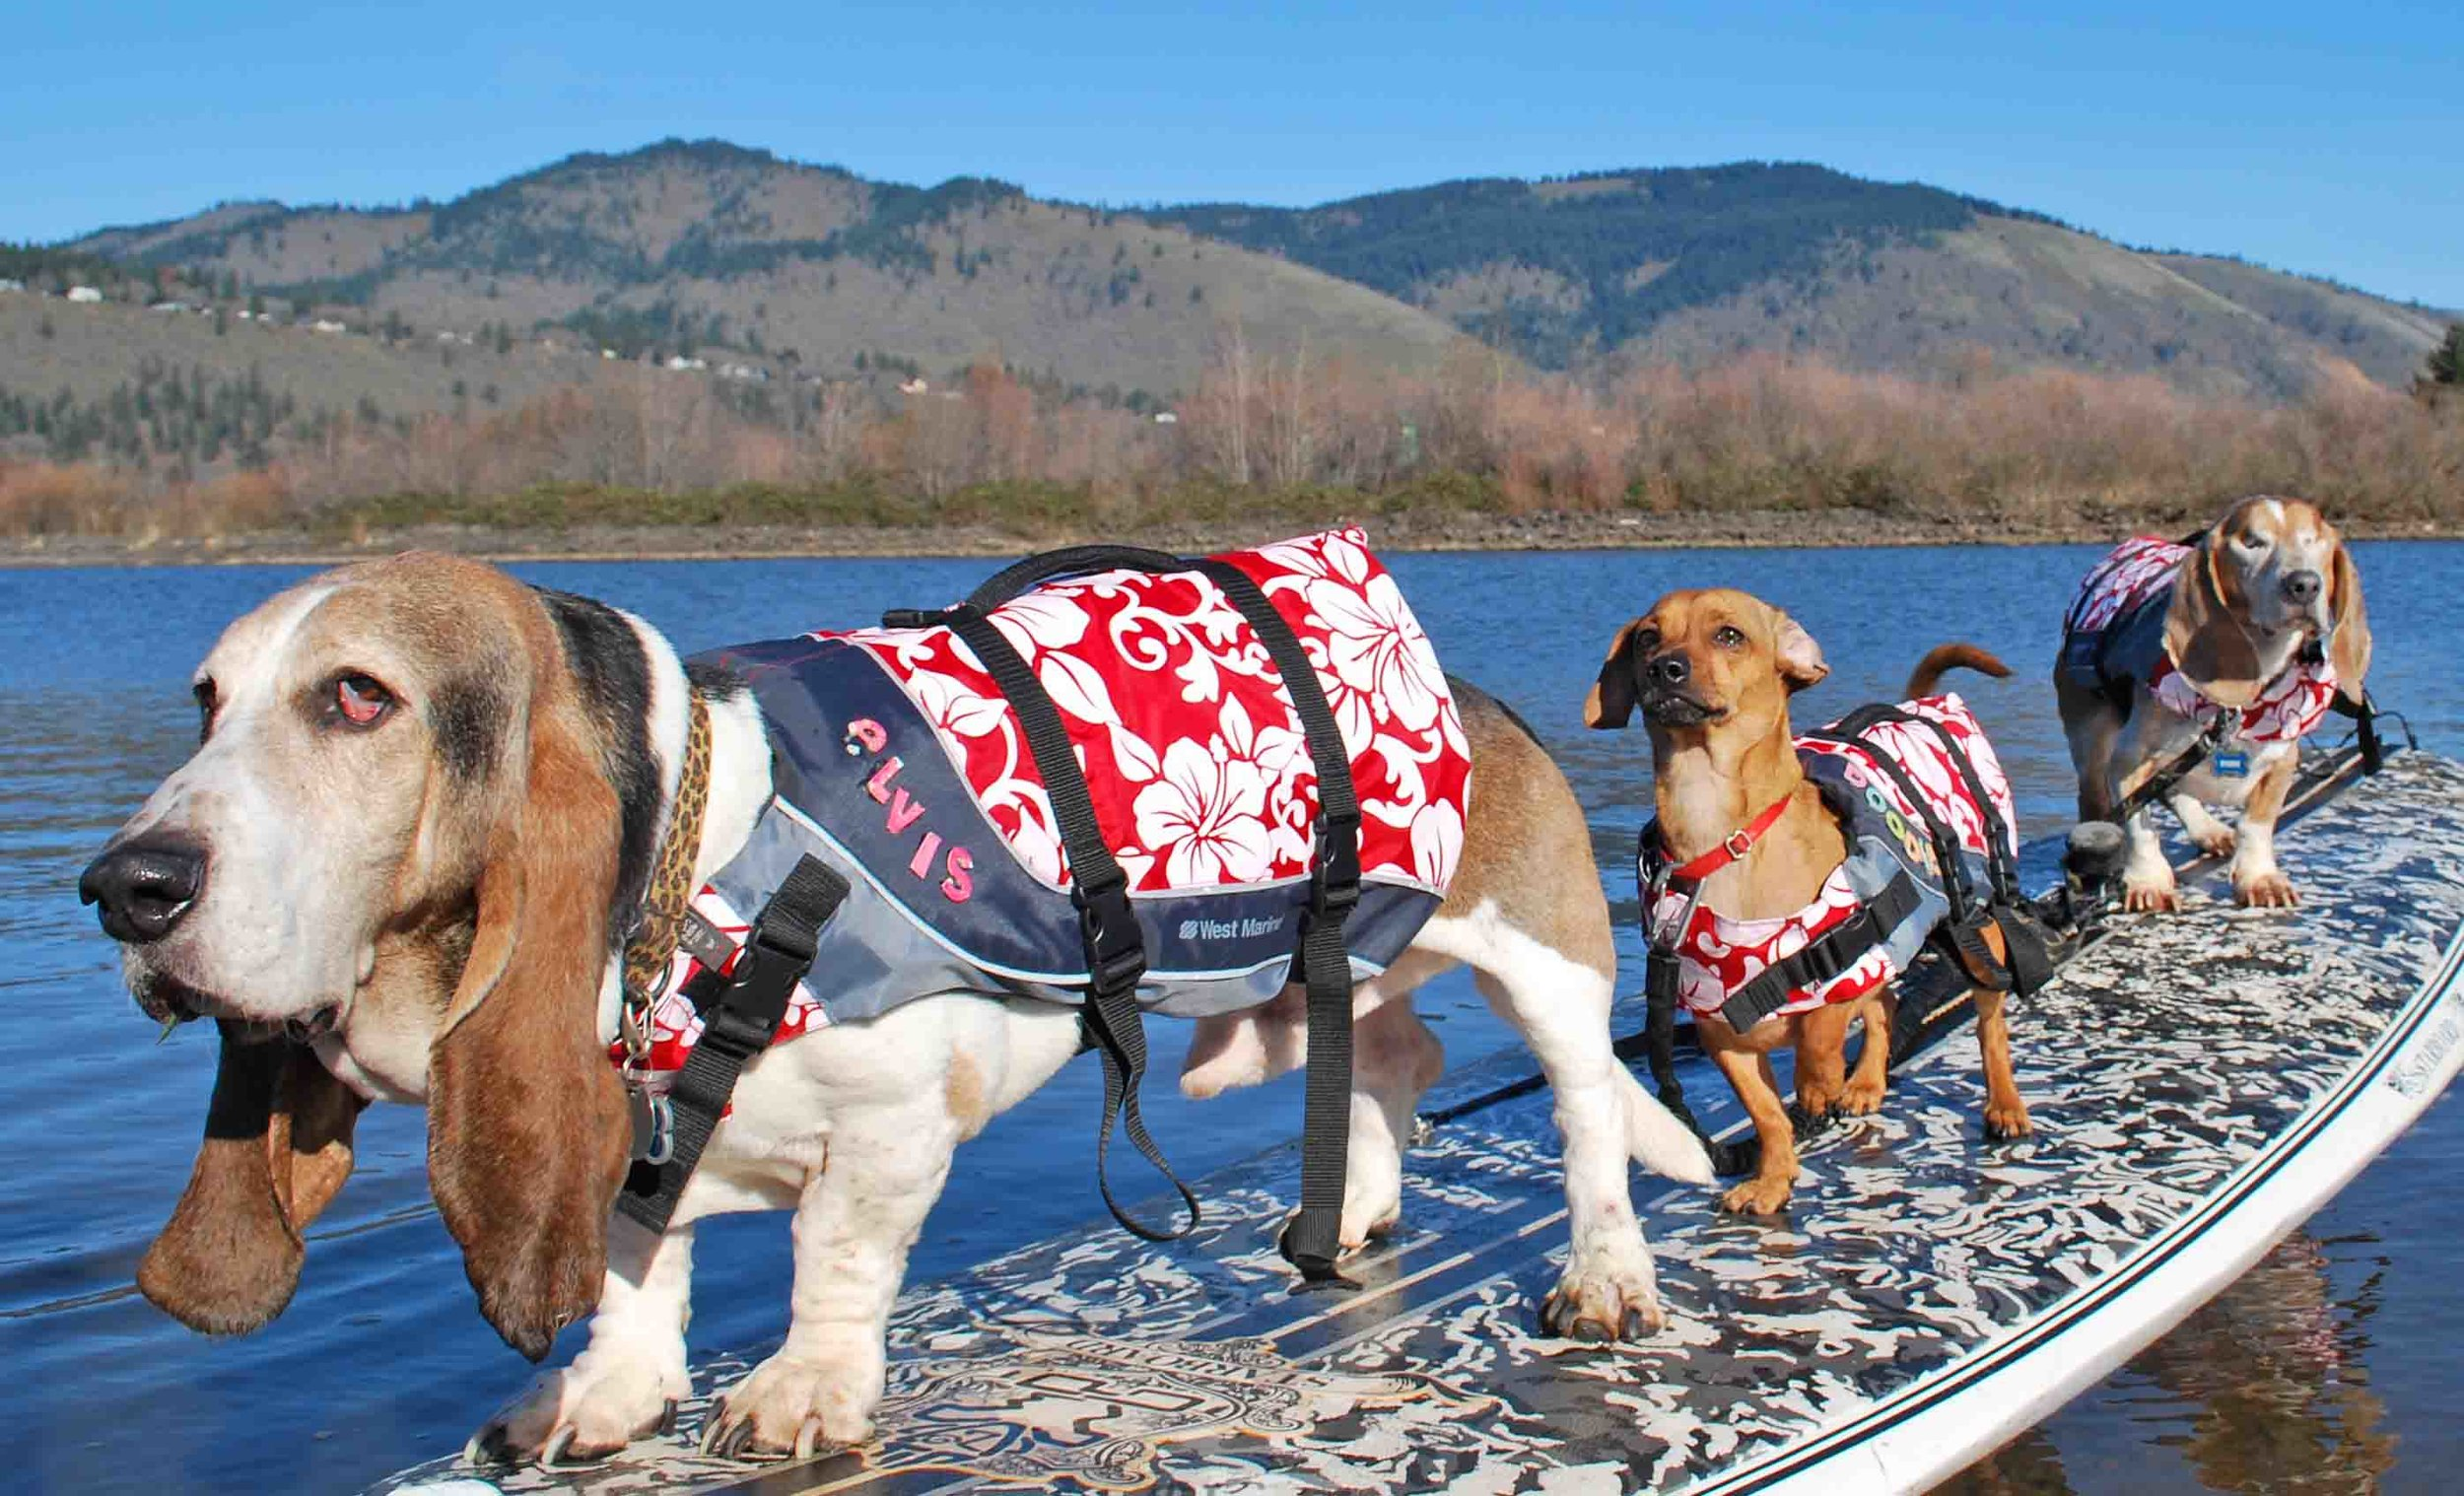 My 3 sons, SUP pups  on the Columbia River  (L to R): Elvis, Doodle, Dude                     (c) BarbAyers,wwwDogDiary.org